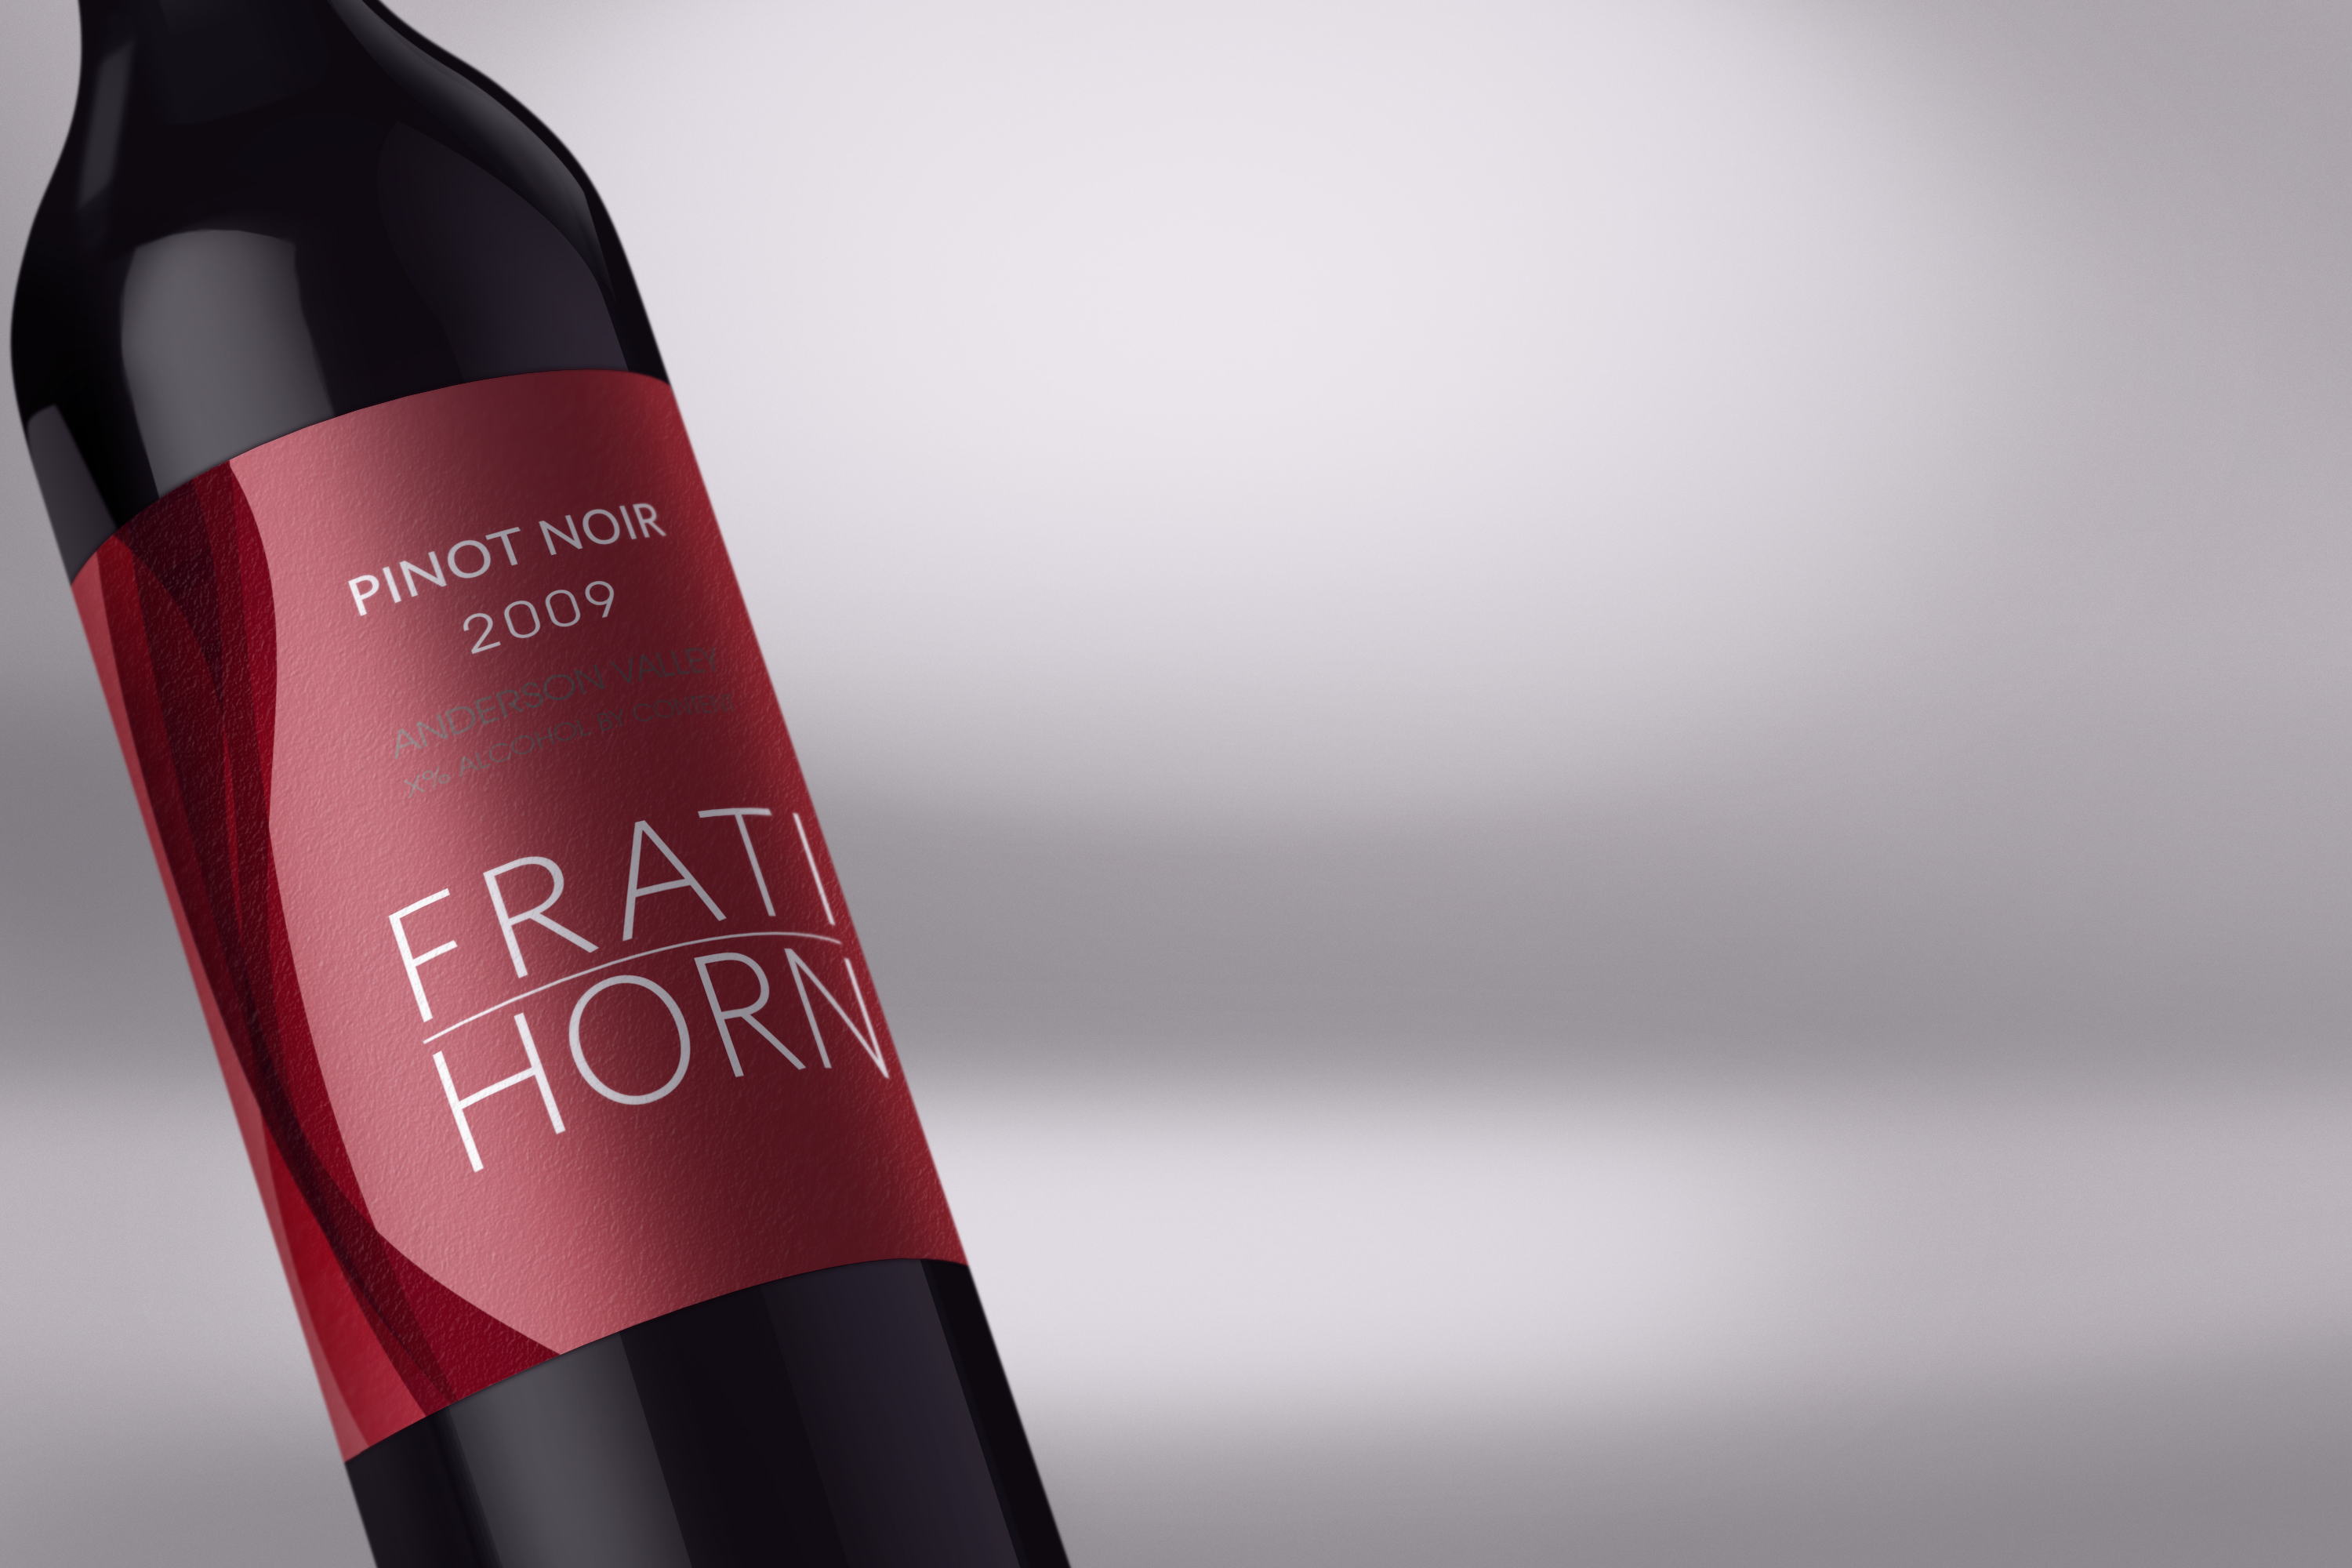 Fratti Horn Wines